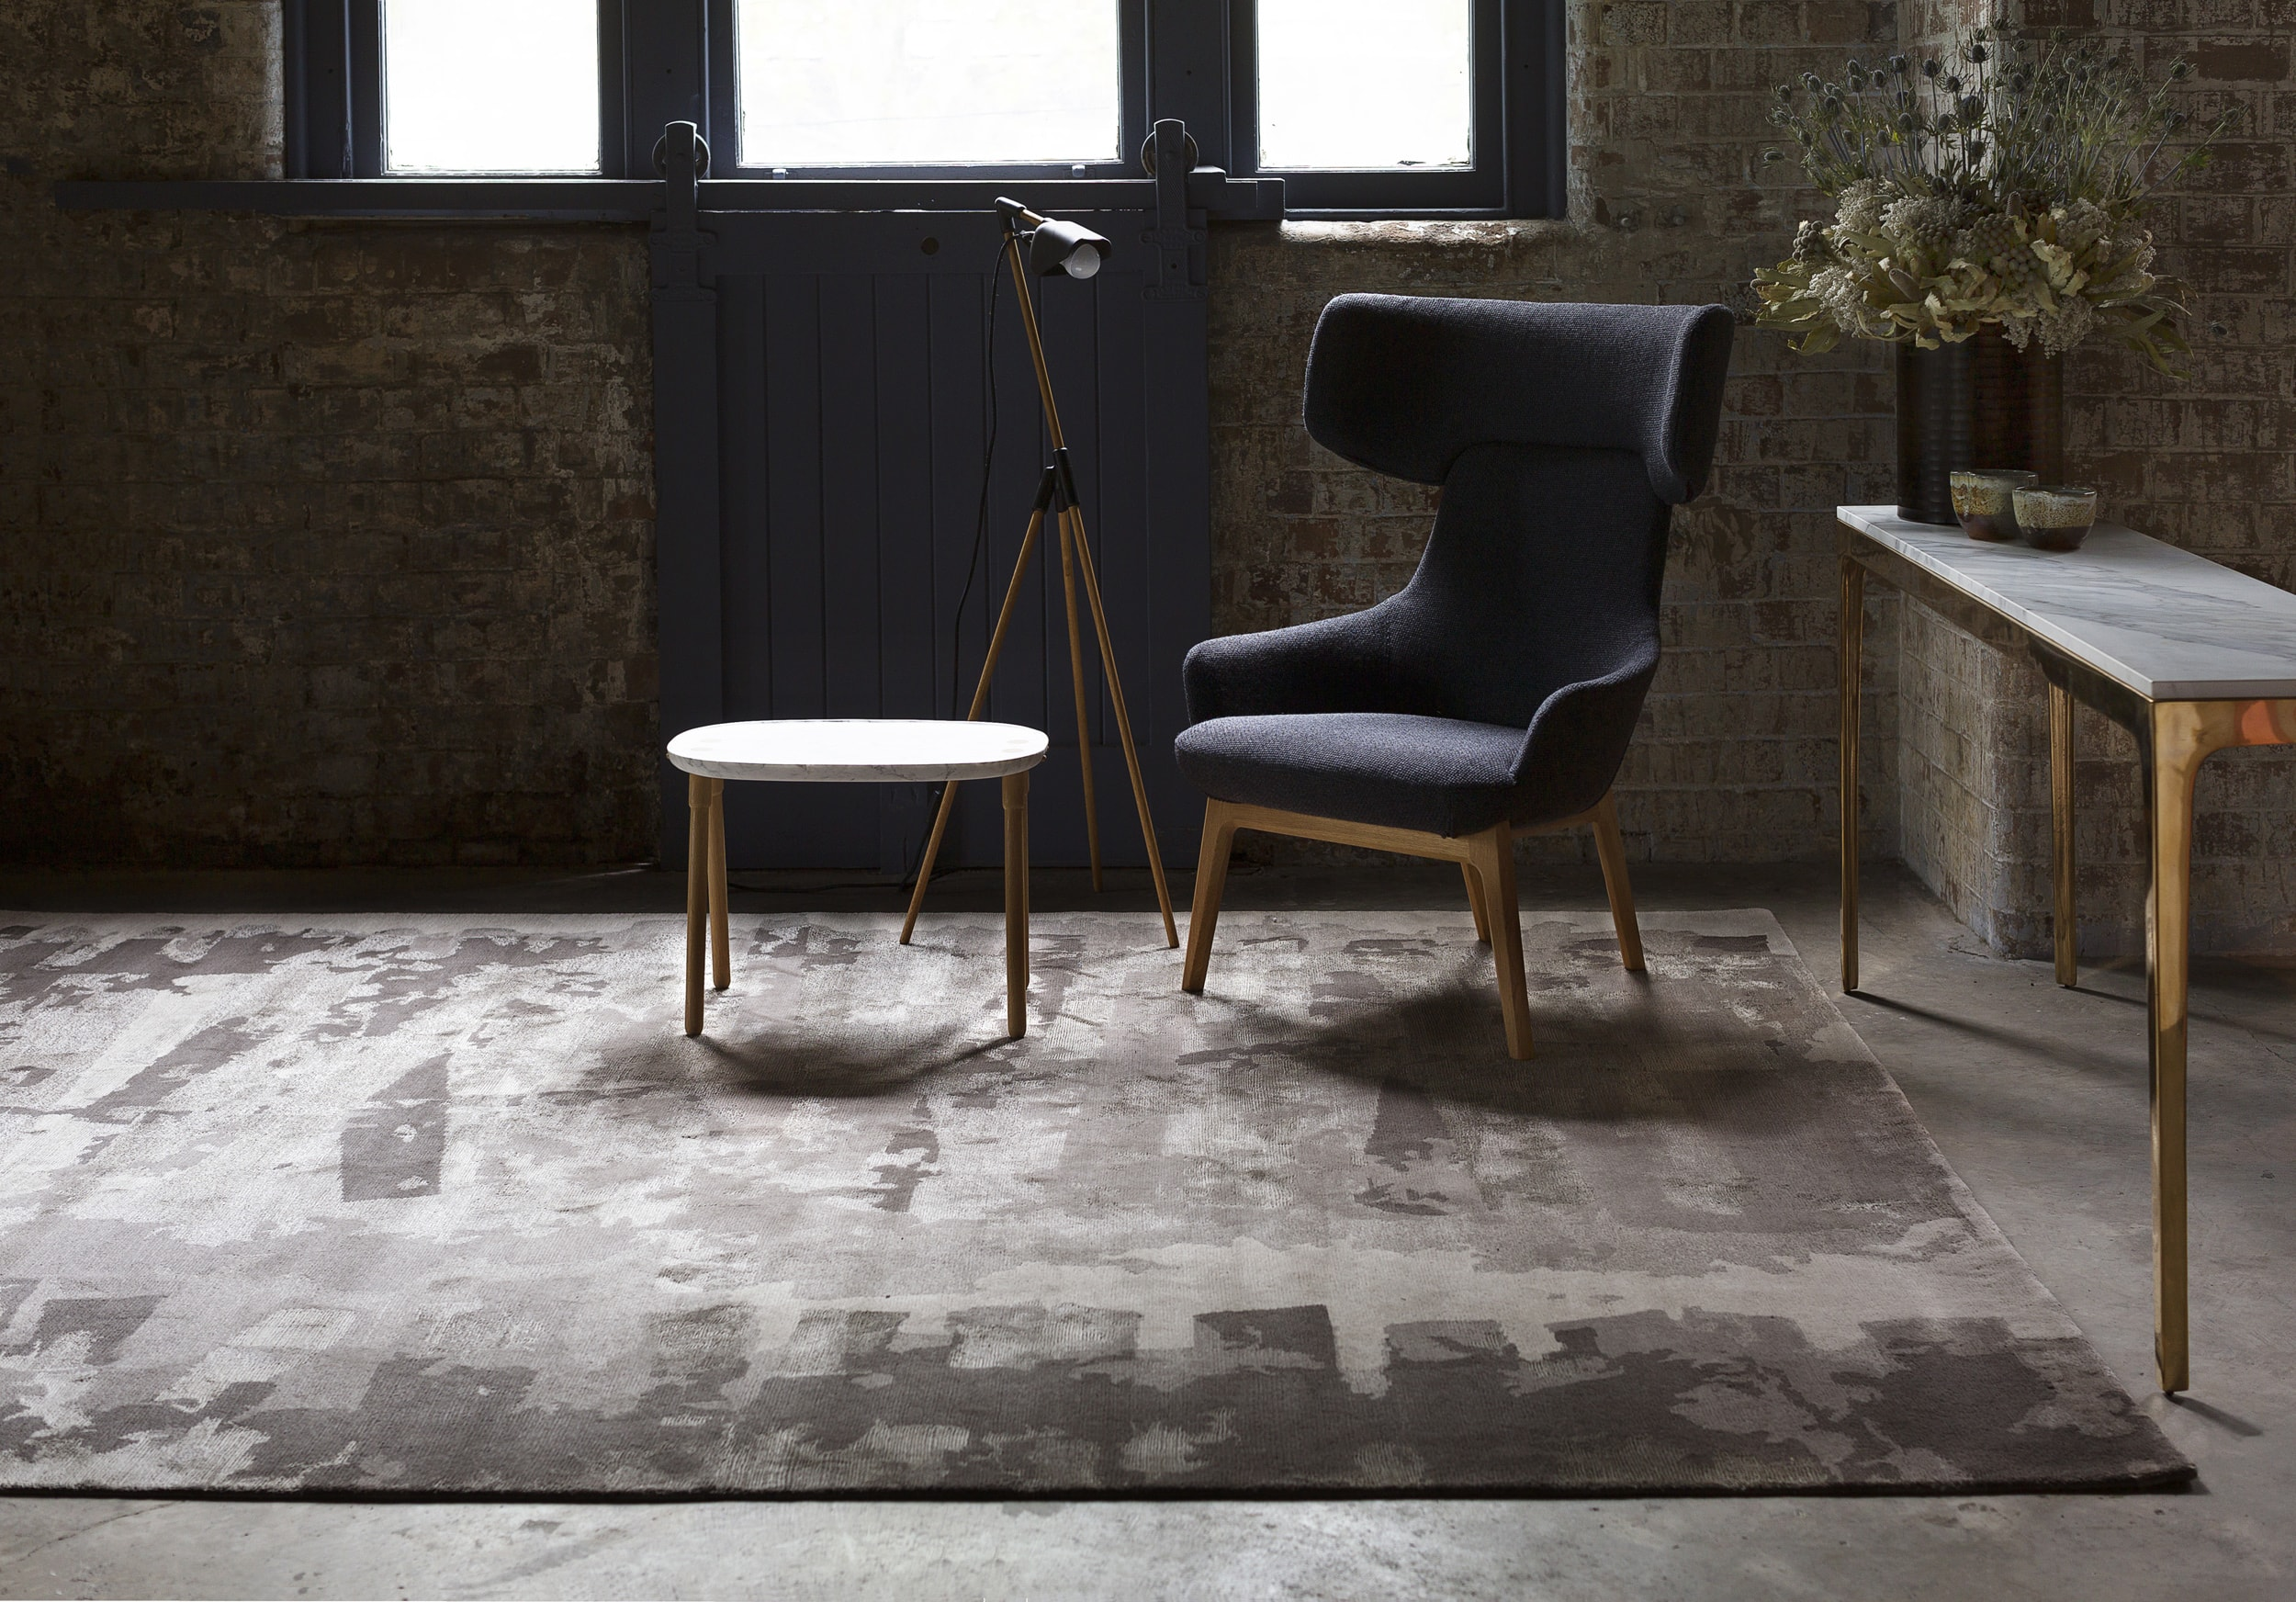 Designer Rugs Launch New Collection In Collaboration With Hare And Klein Collection Feature Australiarefraction Landscape Edit 2 Min